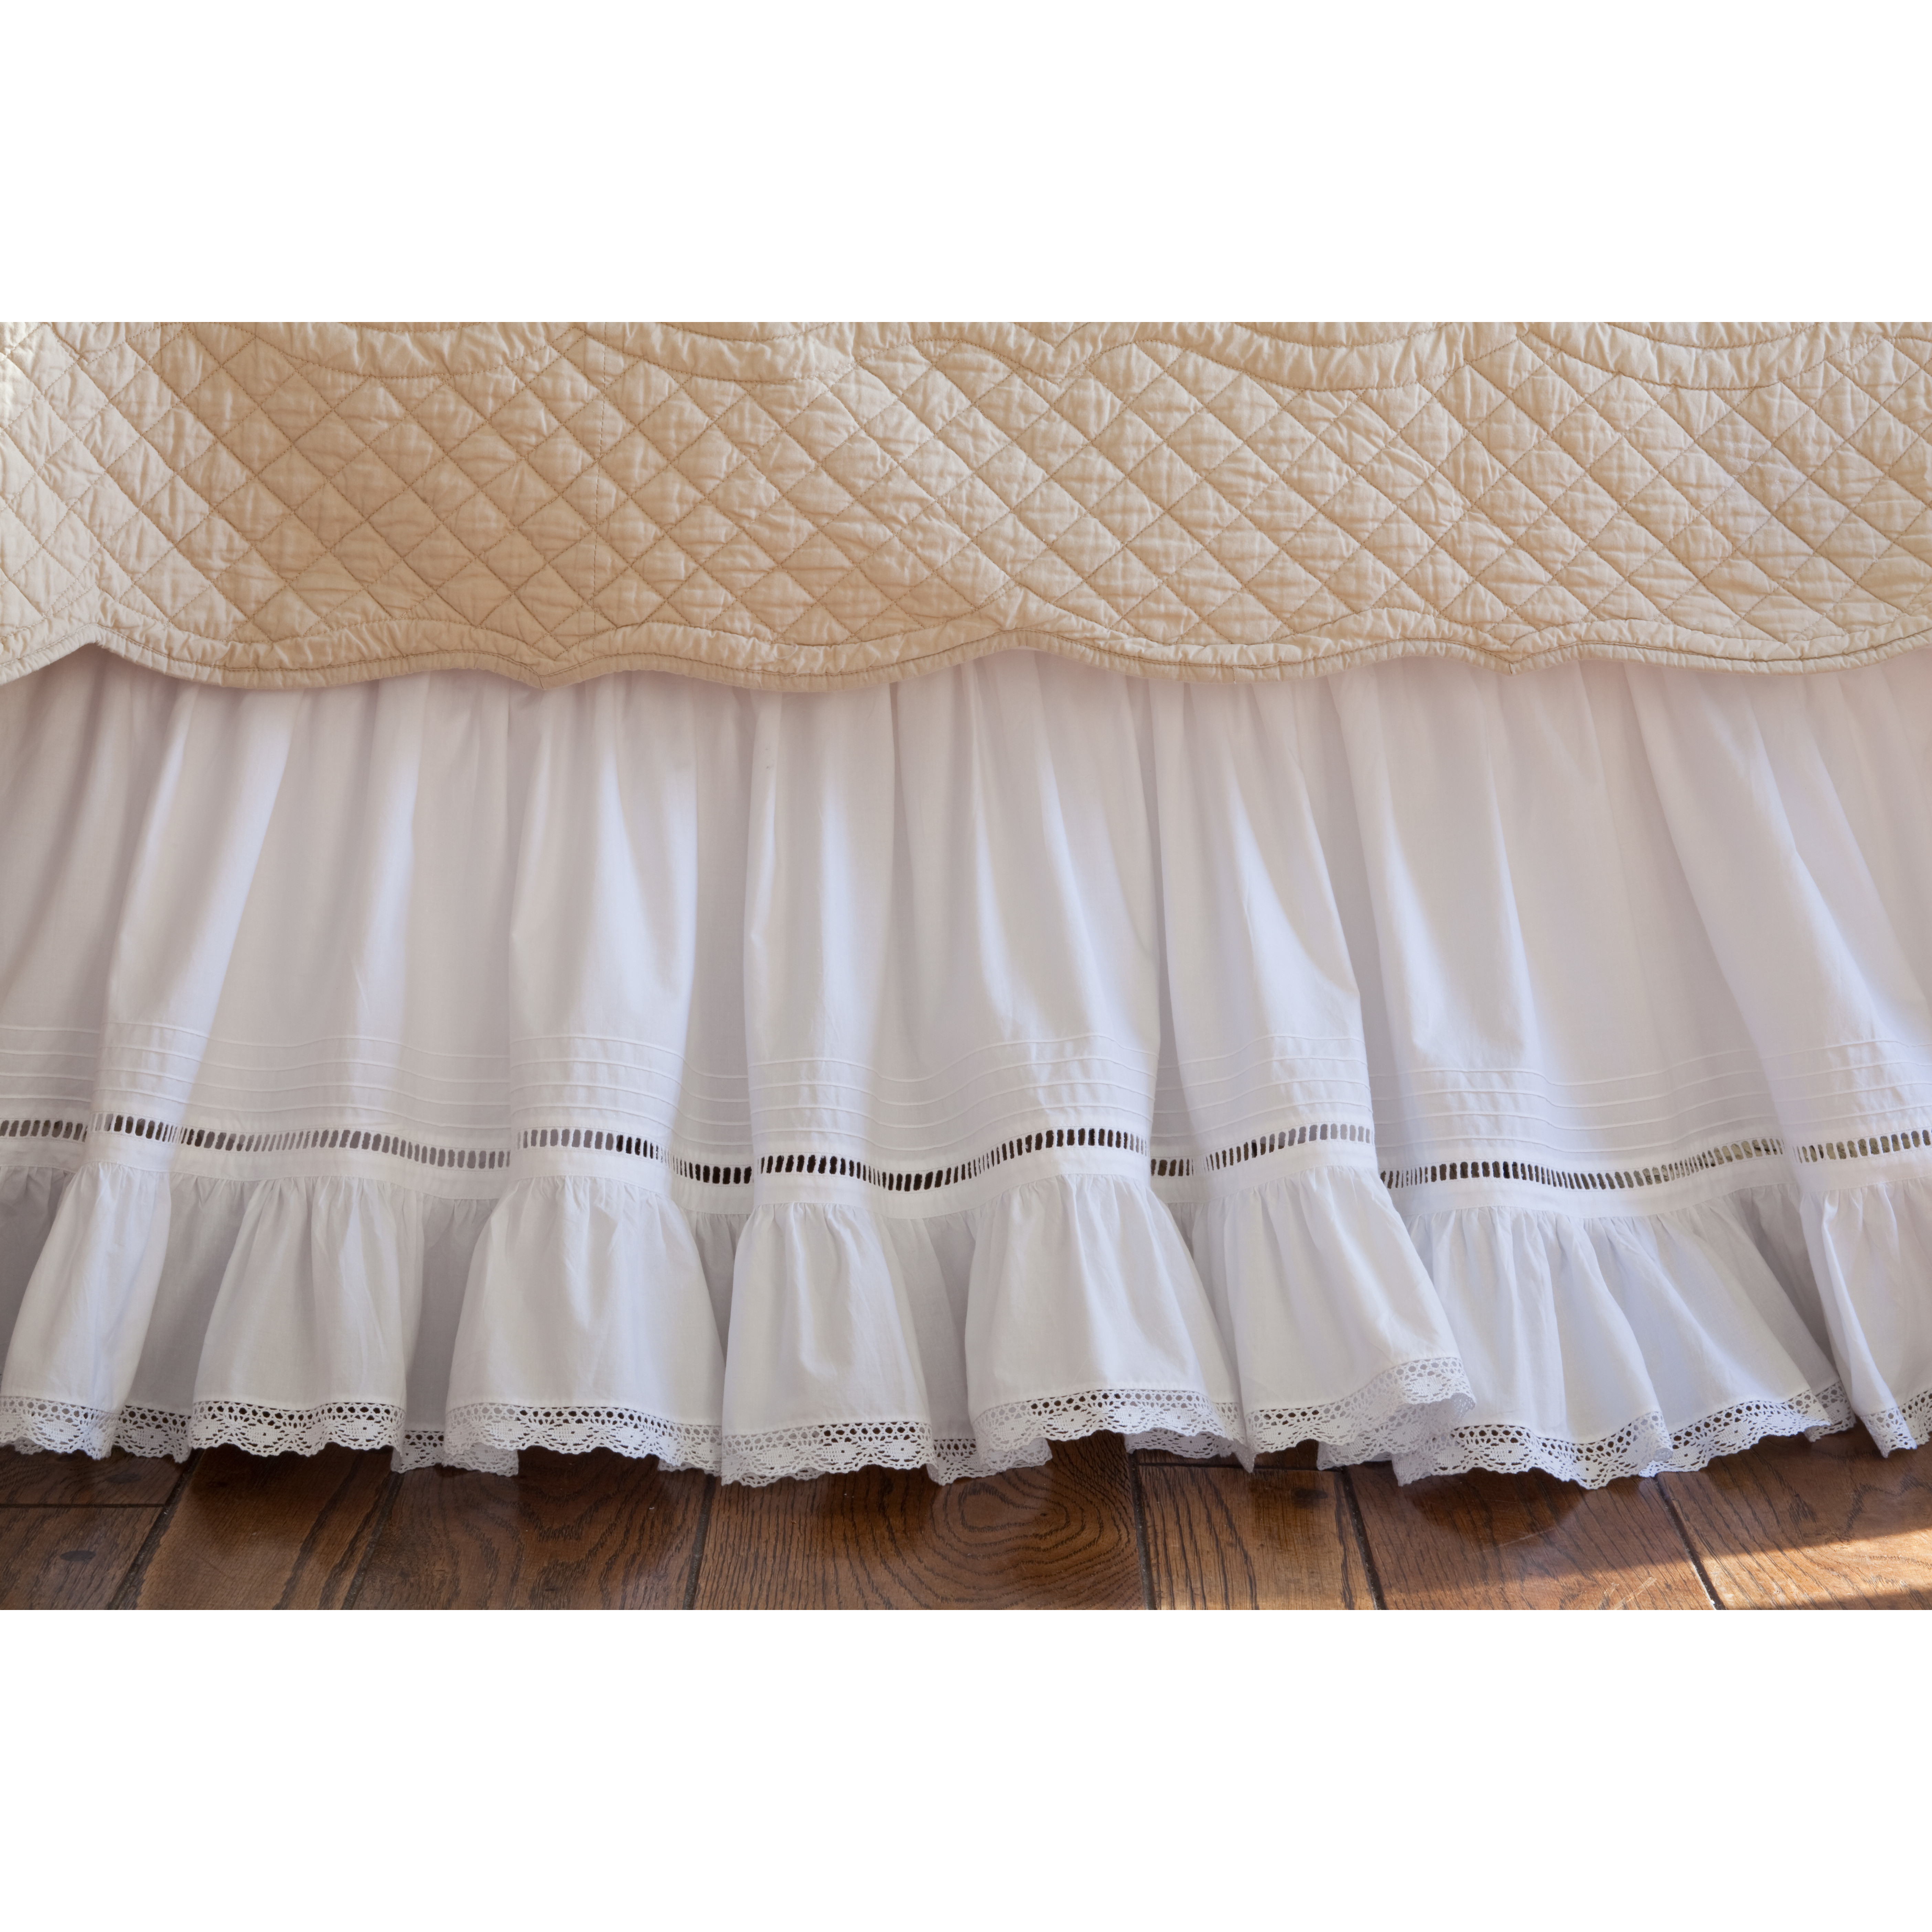 Awesome Taylor Linens Prairie Crochet Cotton Bed Skirt & Reviews Crochet Bed Skirts Of Gorgeous 41 Pics Crochet Bed Skirts